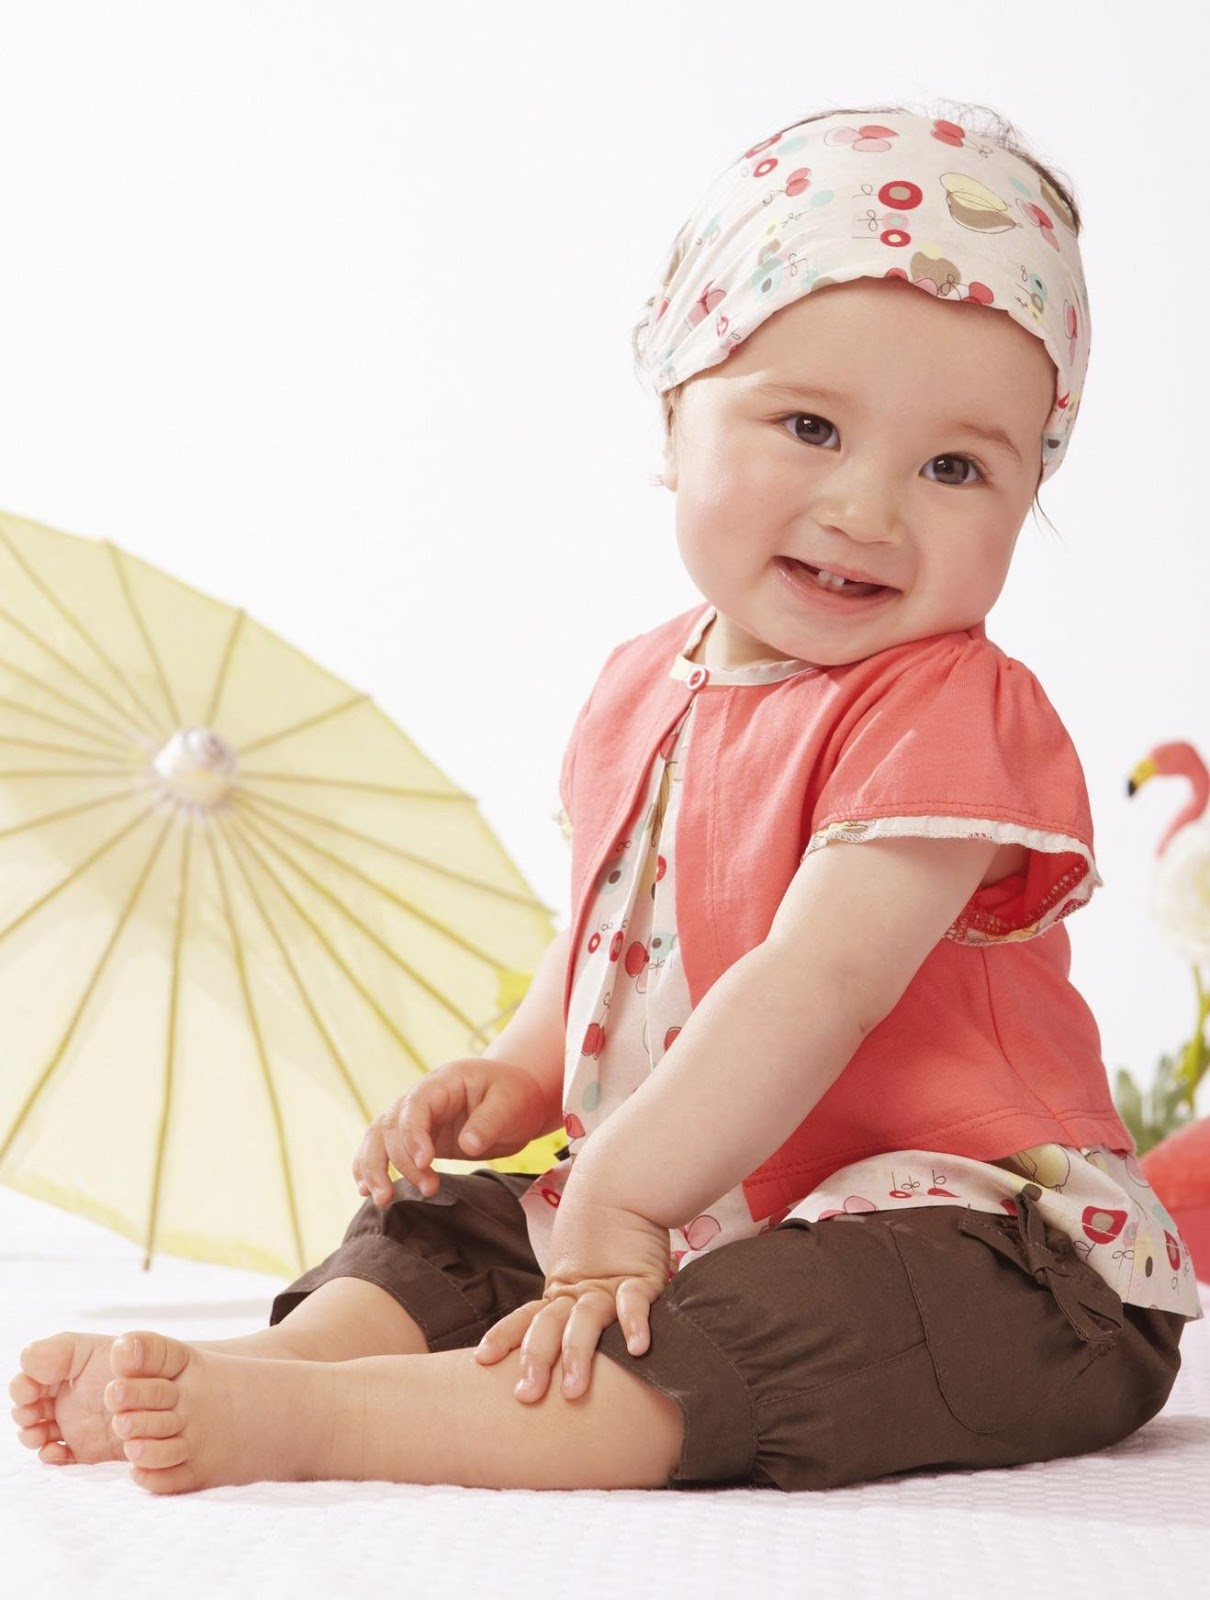 Warm weather is on its way! From flowered dresses to swim sets, shop Tea Collection's baby girl clothes for seasonal style.